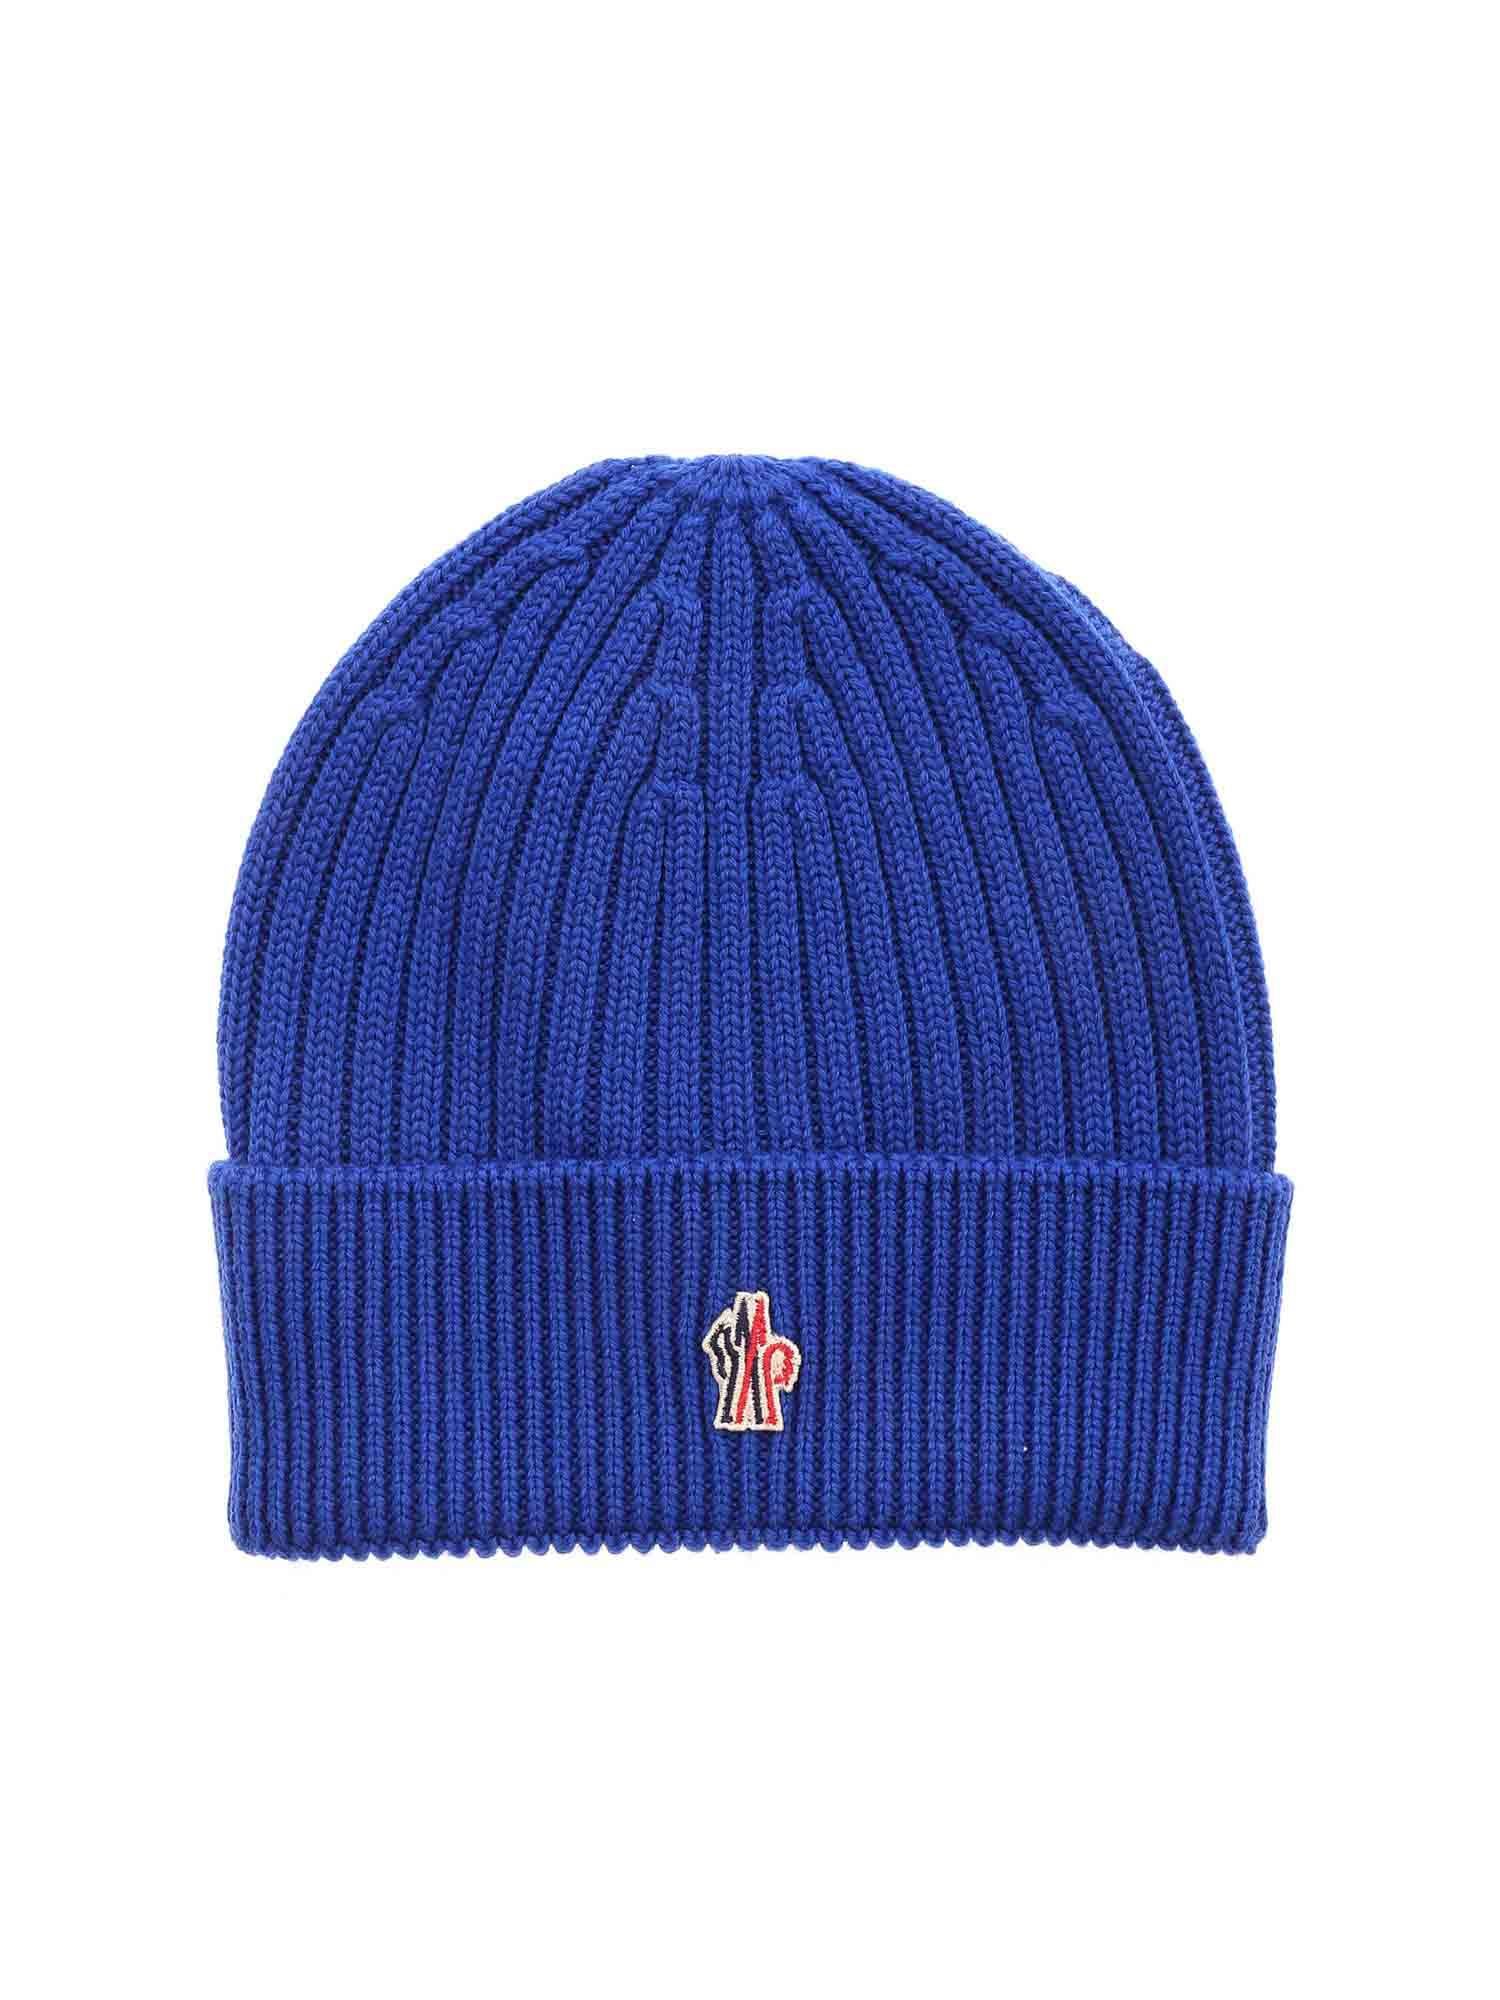 Moncler Grenoble RIBBED BEANIE IN BLUE